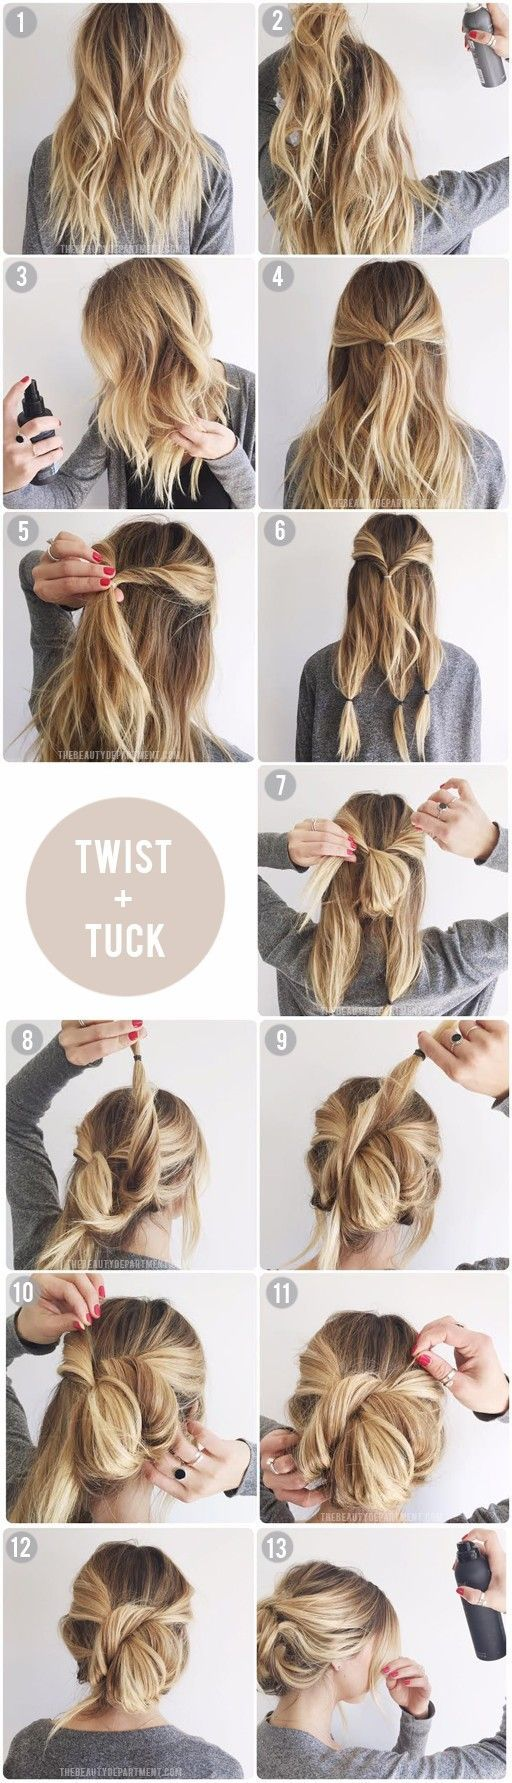 easiest updo ever. {even for those with no hair skills!}: